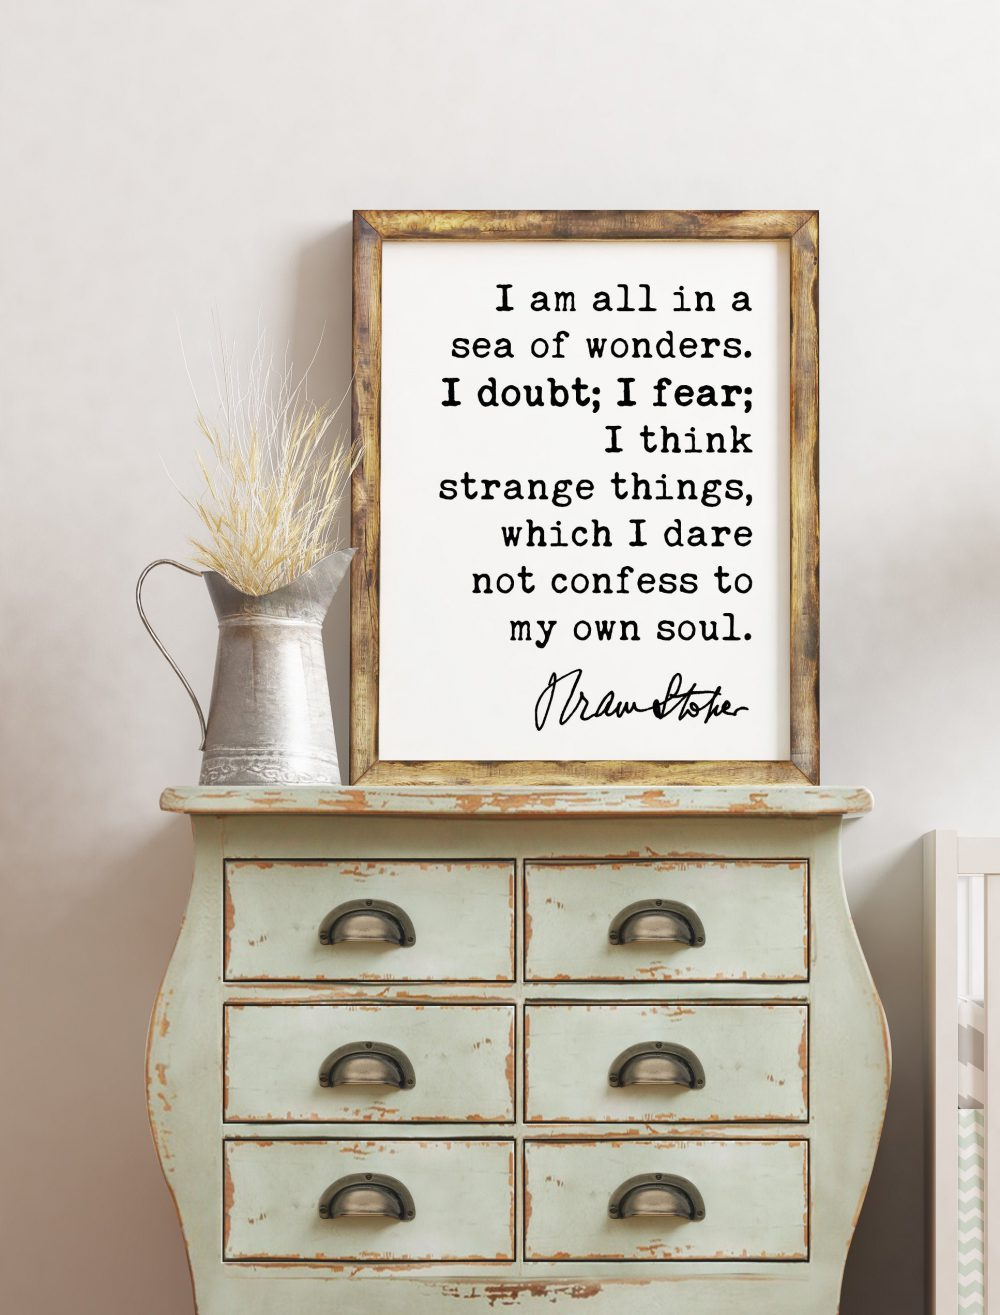 Bram Stoker Dracula Quote Art Print - I am all in a sea of wonders. I doubt; I fear;  - Life quotes, Book Quotes